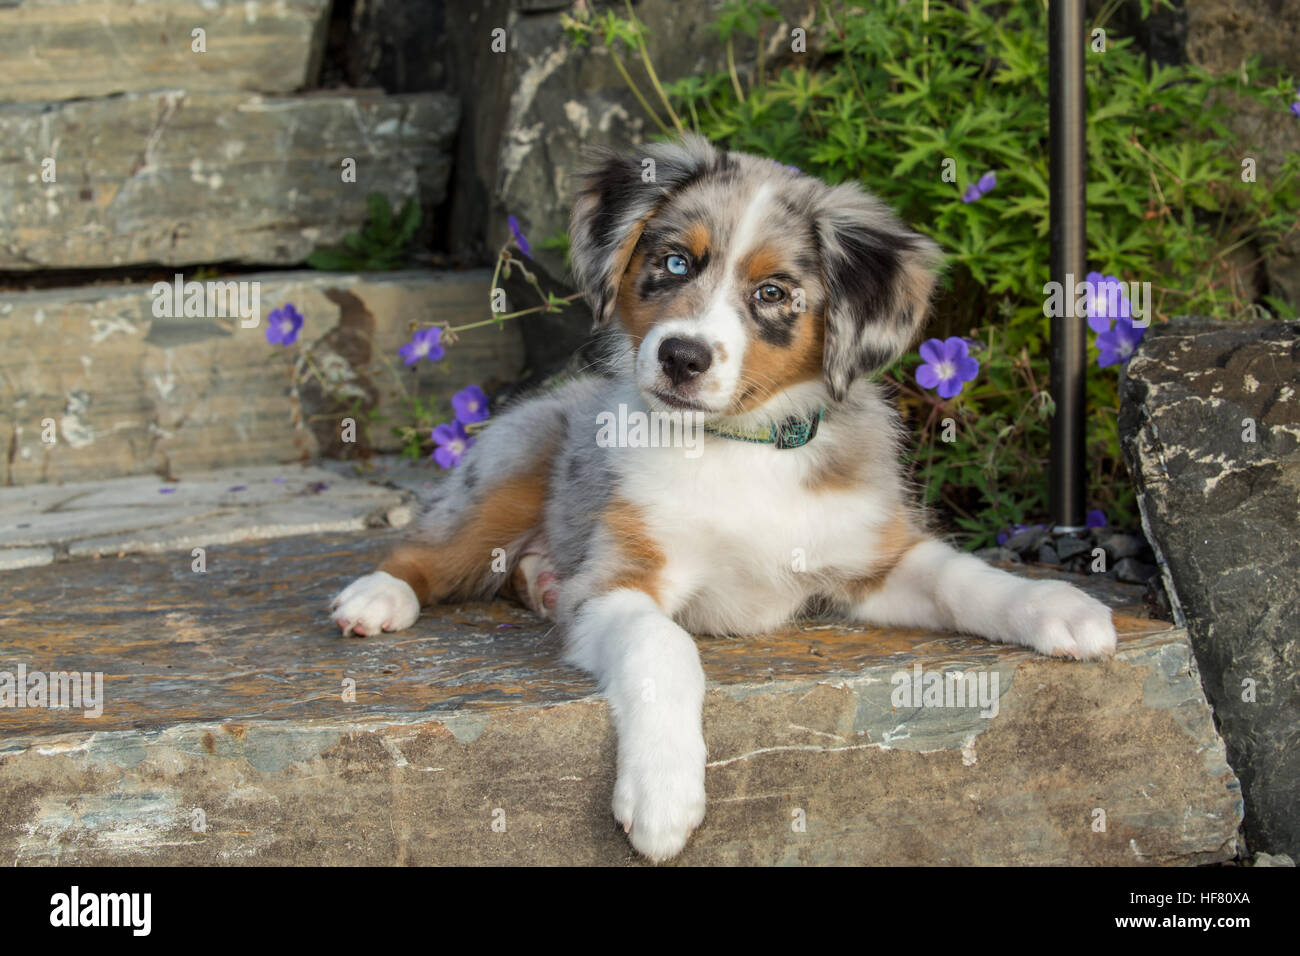 Blue Merle Australian Shepherd Puppy High Resolution Stock Photography And Images Alamy